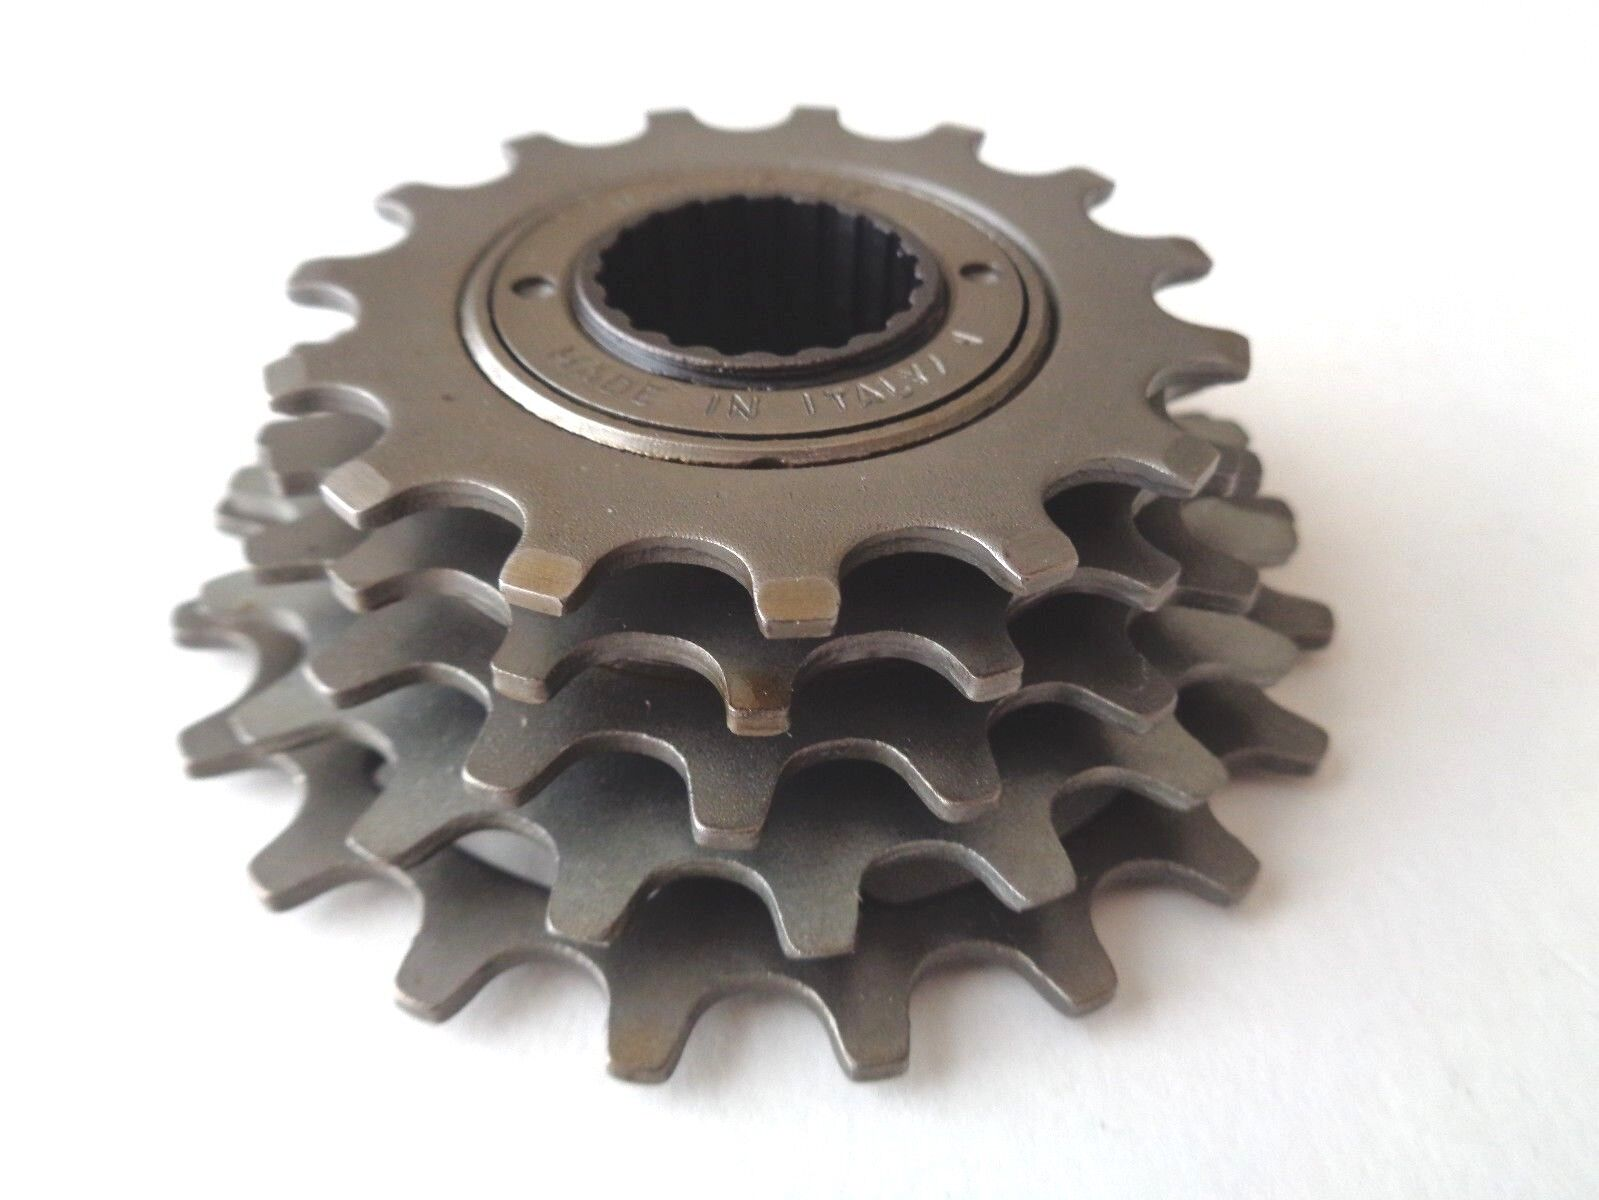 NOS Vintage 1980s REGINA EXTRA BX 15-21 cogs 5  Speed FRENCH freewheel cassette  big savings